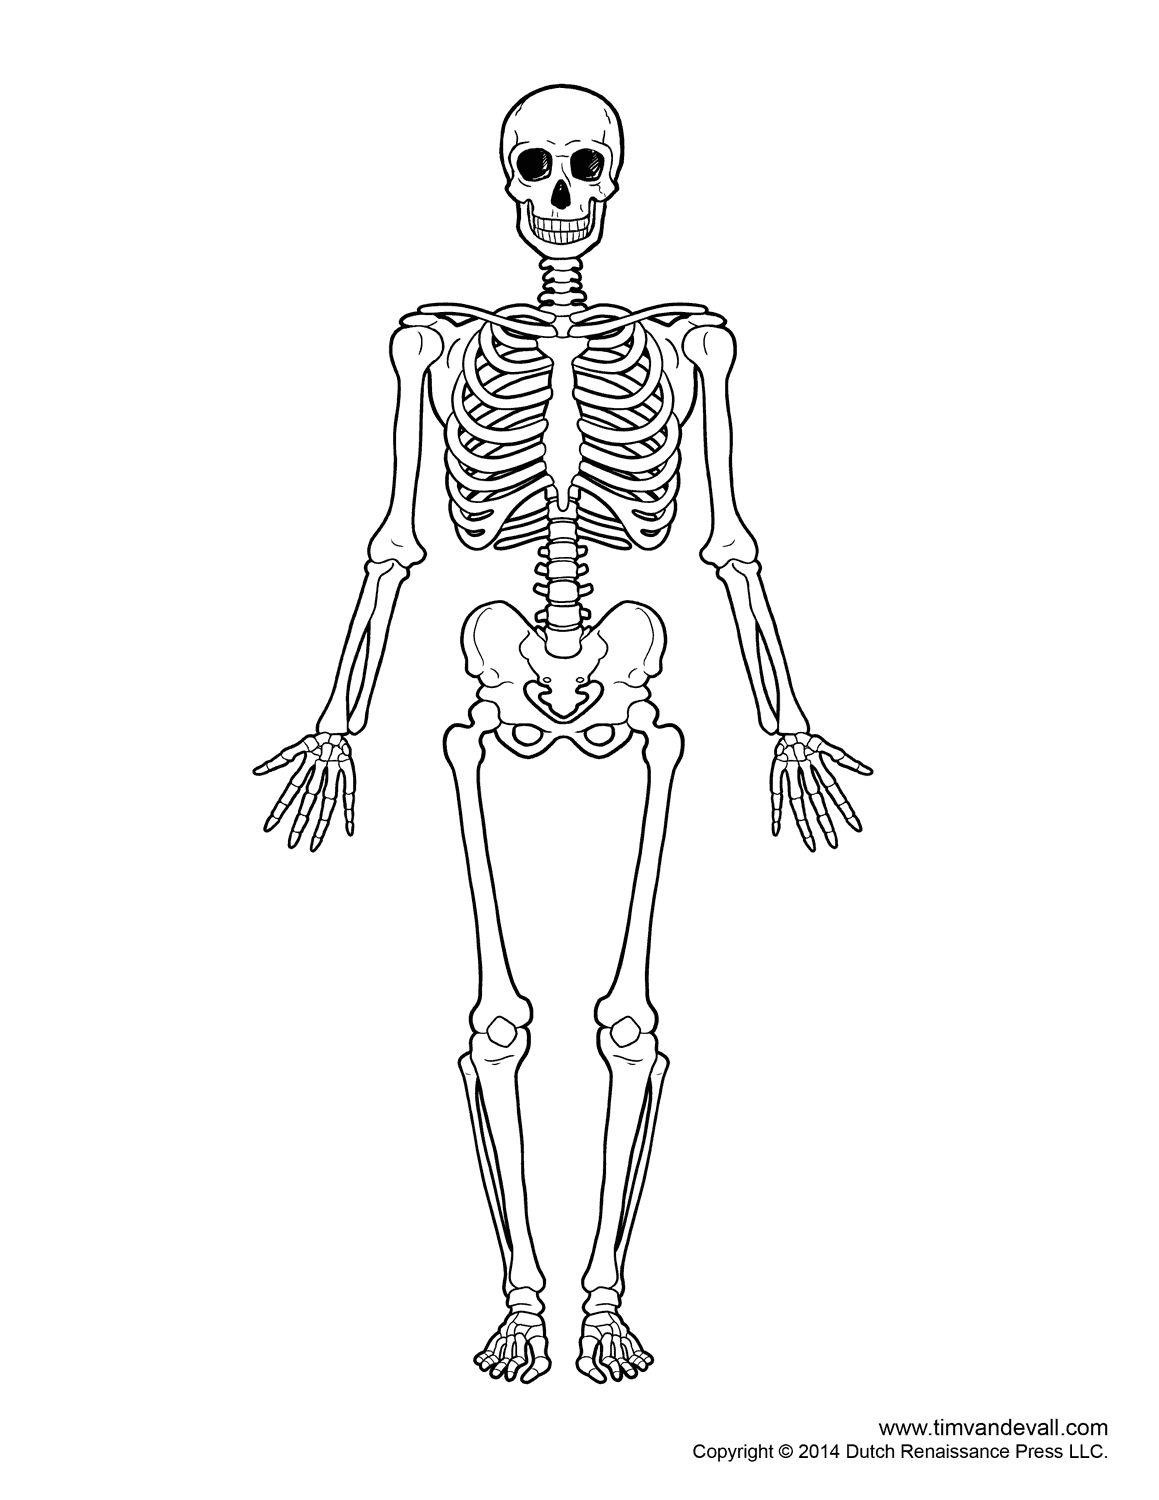 how to draw a skelton diagram of human skeleton clip art library [ 1159 x 1500 Pixel ]